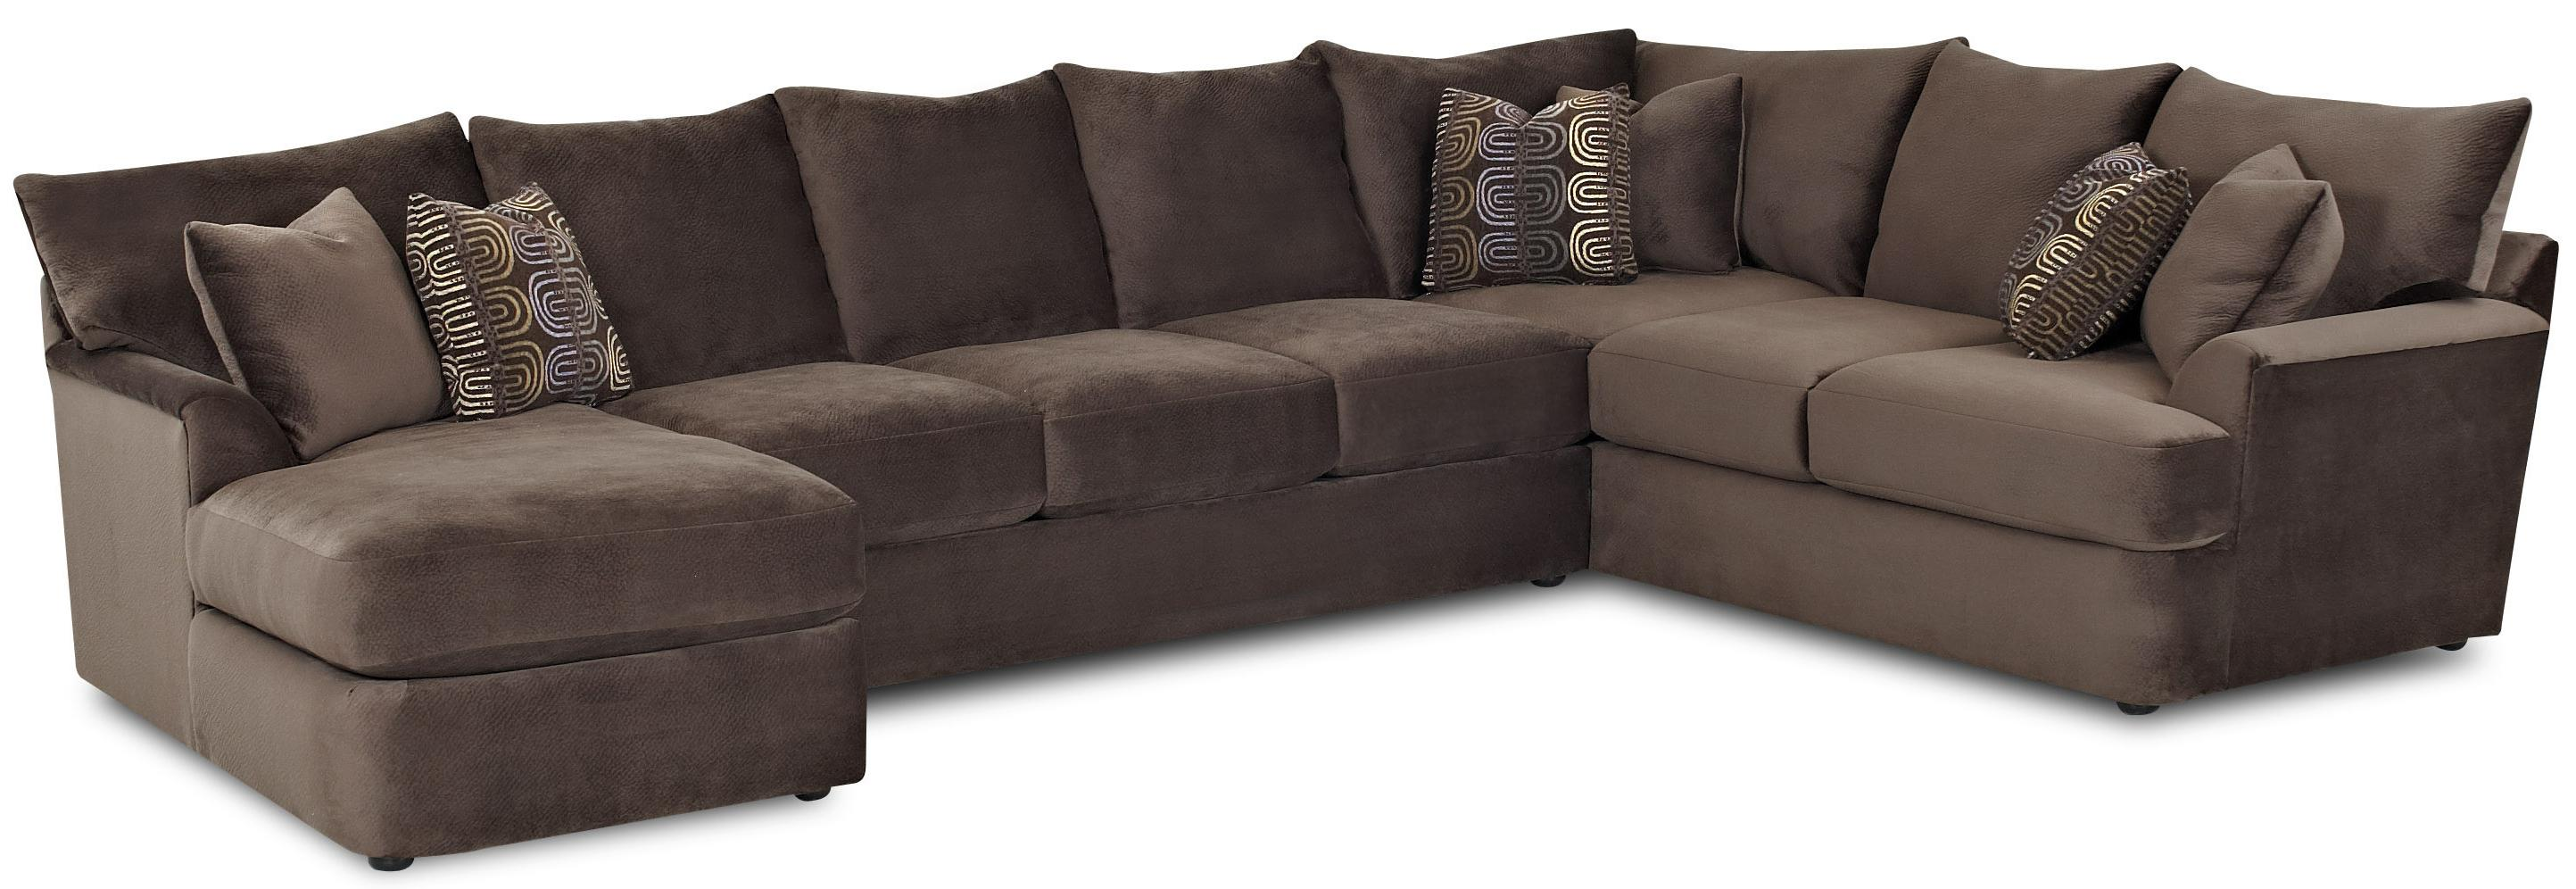 Klaussner Findley L Shaped Sectional Sofa with Left Chaise AHFA